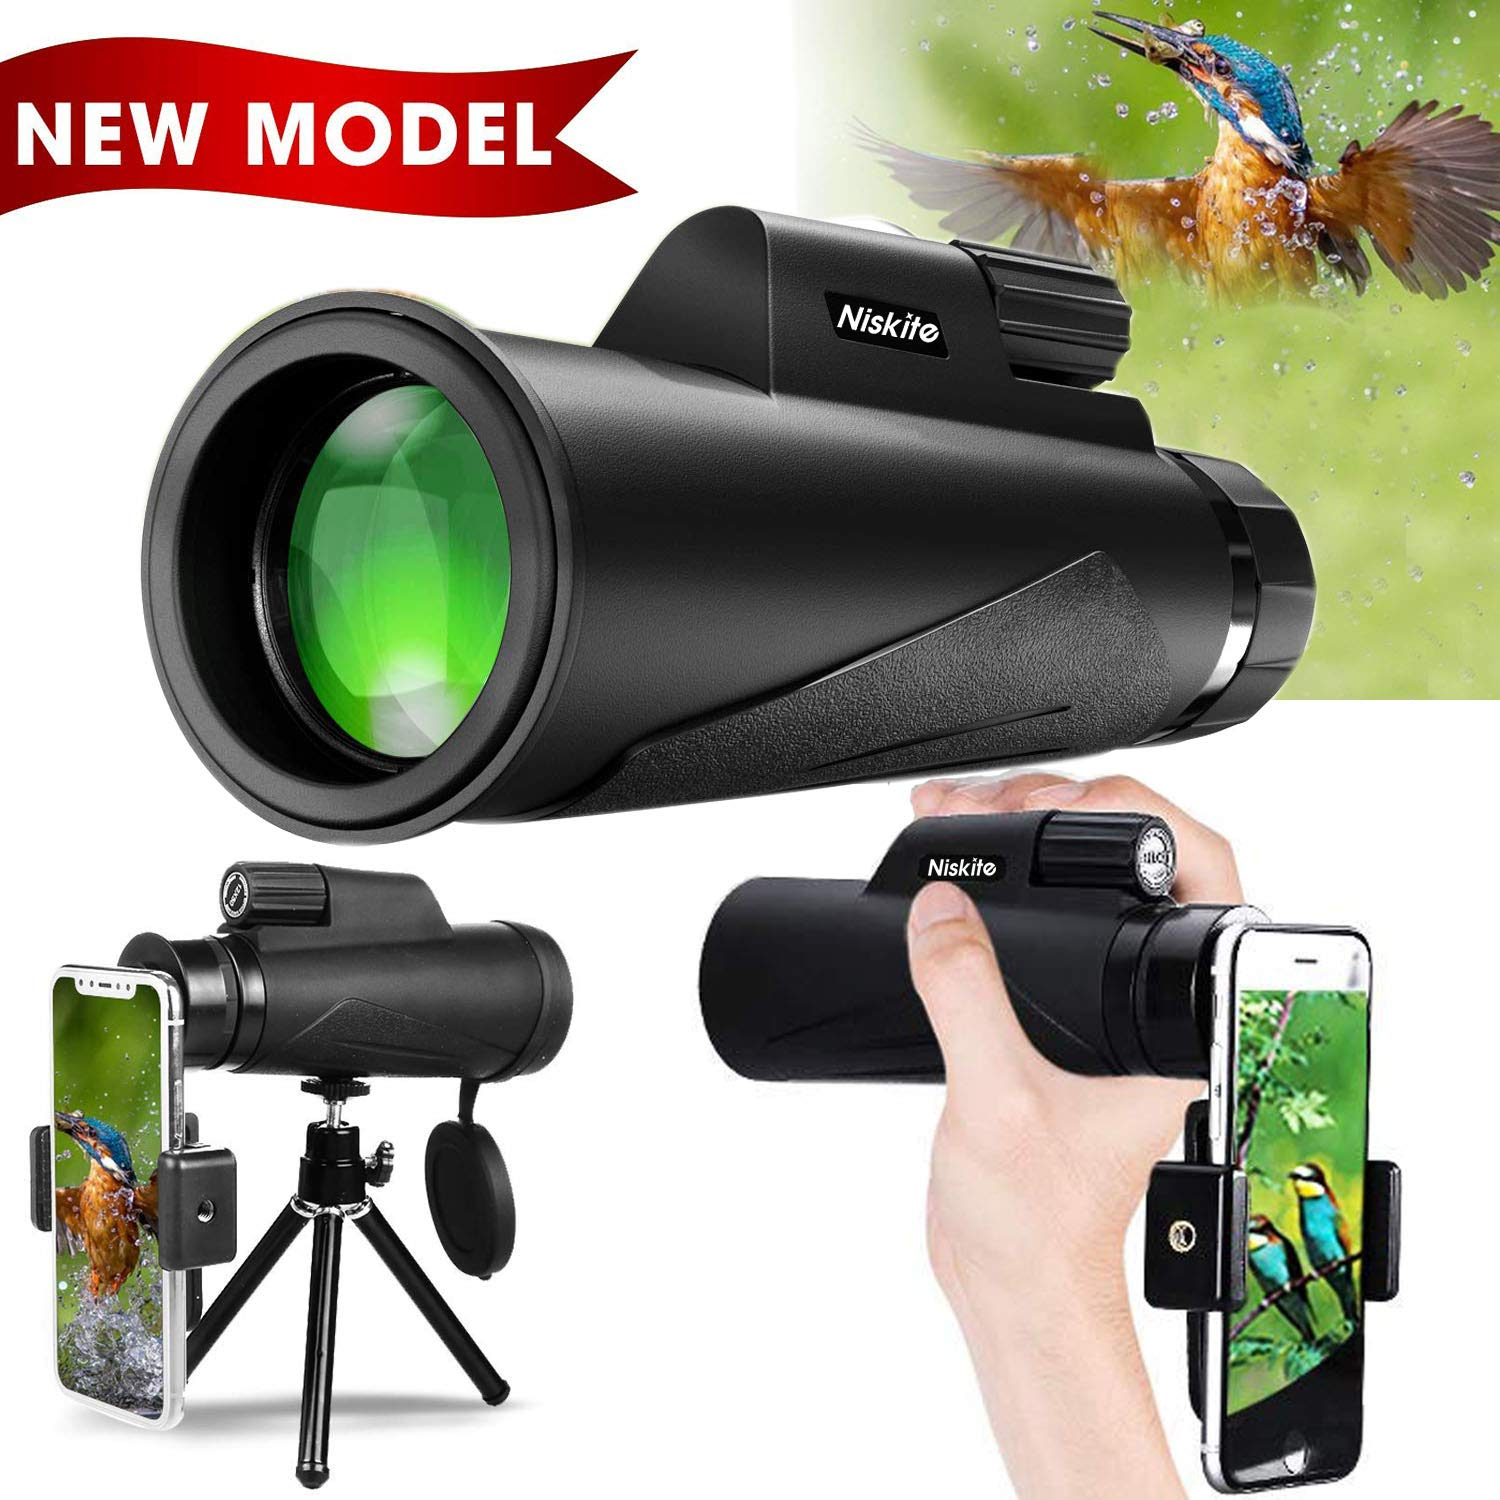 Monocular Telescope for Adult, Newest 2019 High Power 12×50 Compact Monoculars Scope for Smartphone,Waterproof Shockproof HD BAK4 Prism FMC Monoscope for Bird Watching, Hunting, Camping, Travel